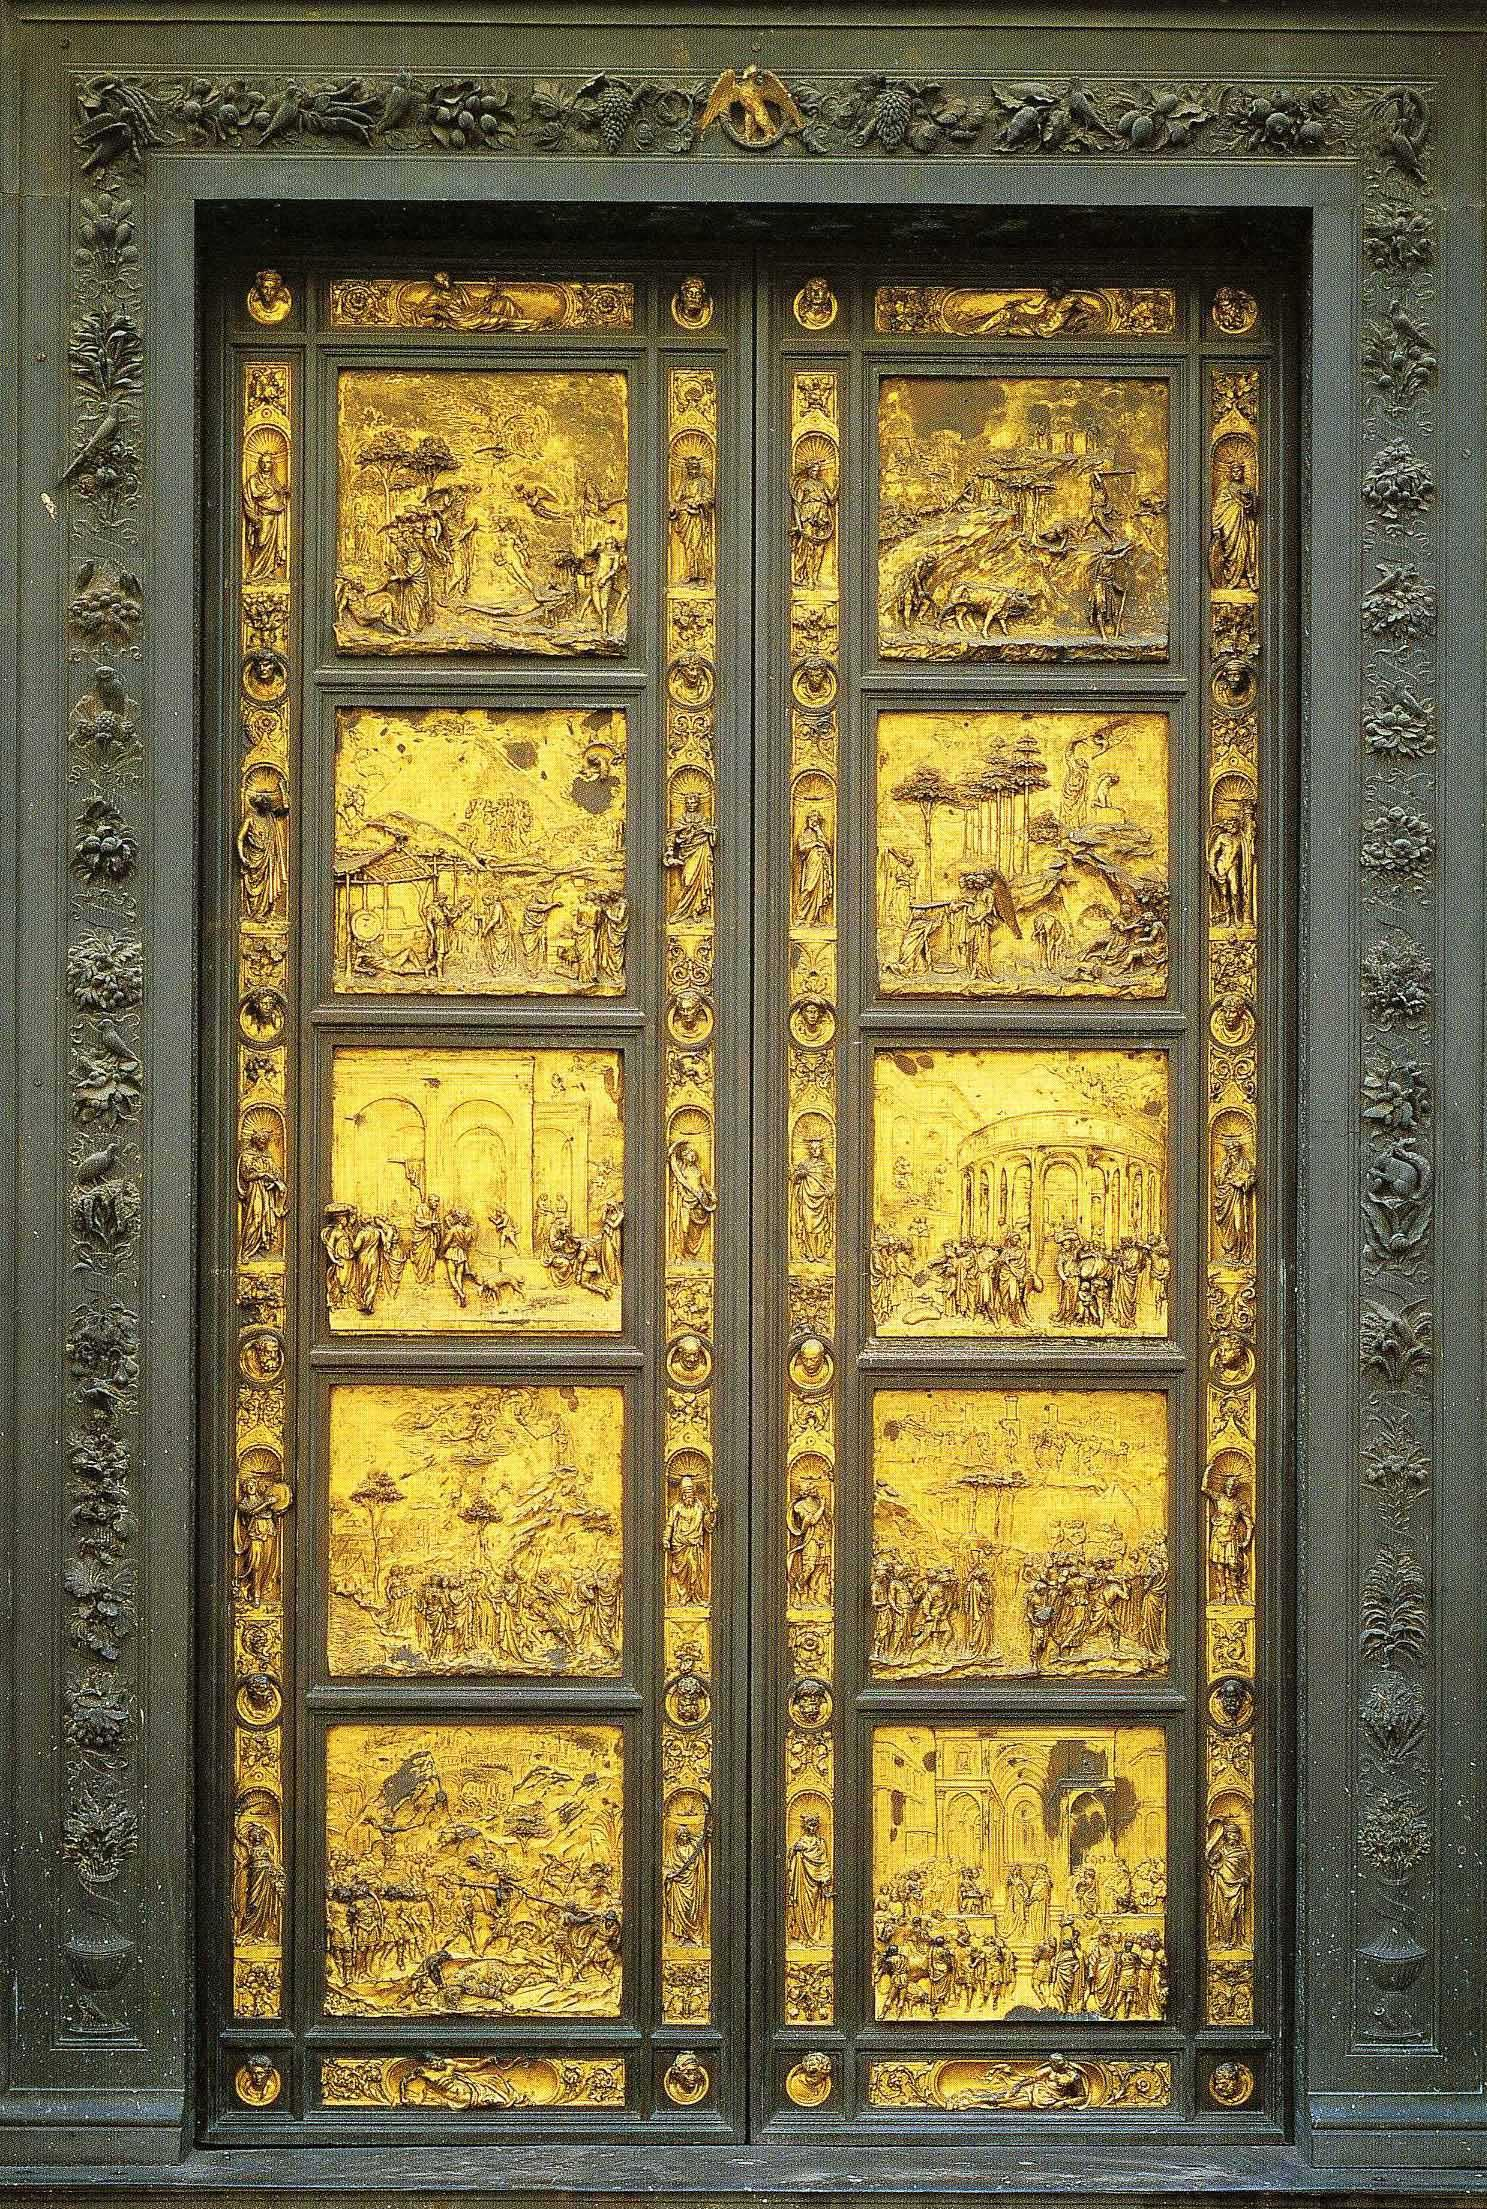 """In this undated photo provided by the Opera di Santa Maria del Fiore, a copy of the original panel of the """"Door of Paradise"""" is seen in Florence, Italy. The original gilded bronze door, so splendid it was dubbed the """"Door of Paradise"""" by Michelangelo, will be seen again in Florence after 27 years of restoration to remove damage by pollution, vandalism and the wear and tear of centuries. But Lorenzo Ghiberti's 15th-century door won't be going back in its place on the baptistry of Florence's duomo, or cathedral. Starting in September, it will go on display in a Florence museum, Museo dell'Opera di Santa Maria del Fiore, to preserve it from renewed damage. (AP Photo/Opera di Santa Maria del Fiore)"""